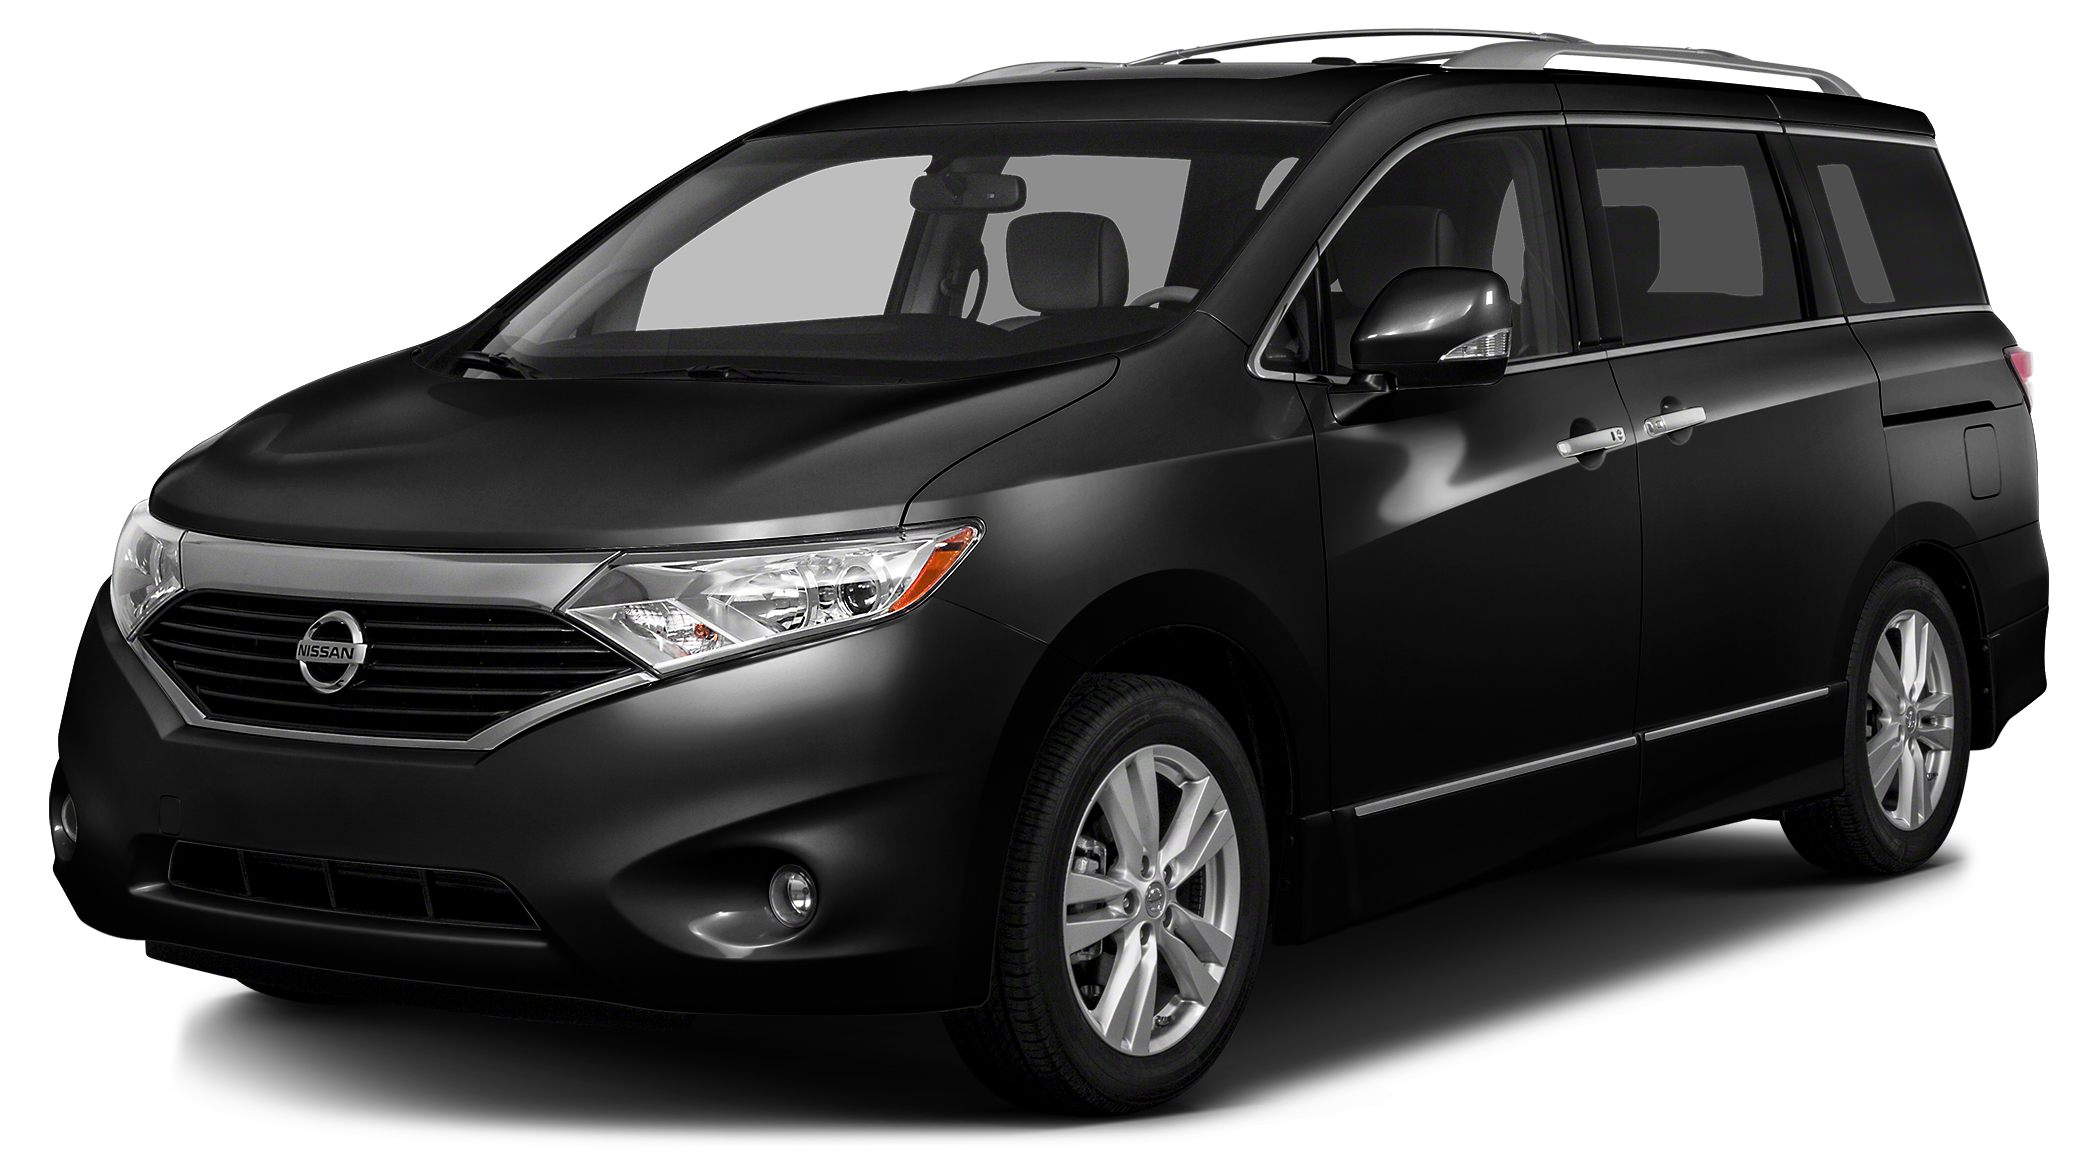 2015 Nissan Quest SV YES YOU FOUND IT A HARD TO FIND NISSAN QUEST AT A GREAT PRICE ITS SV PAC